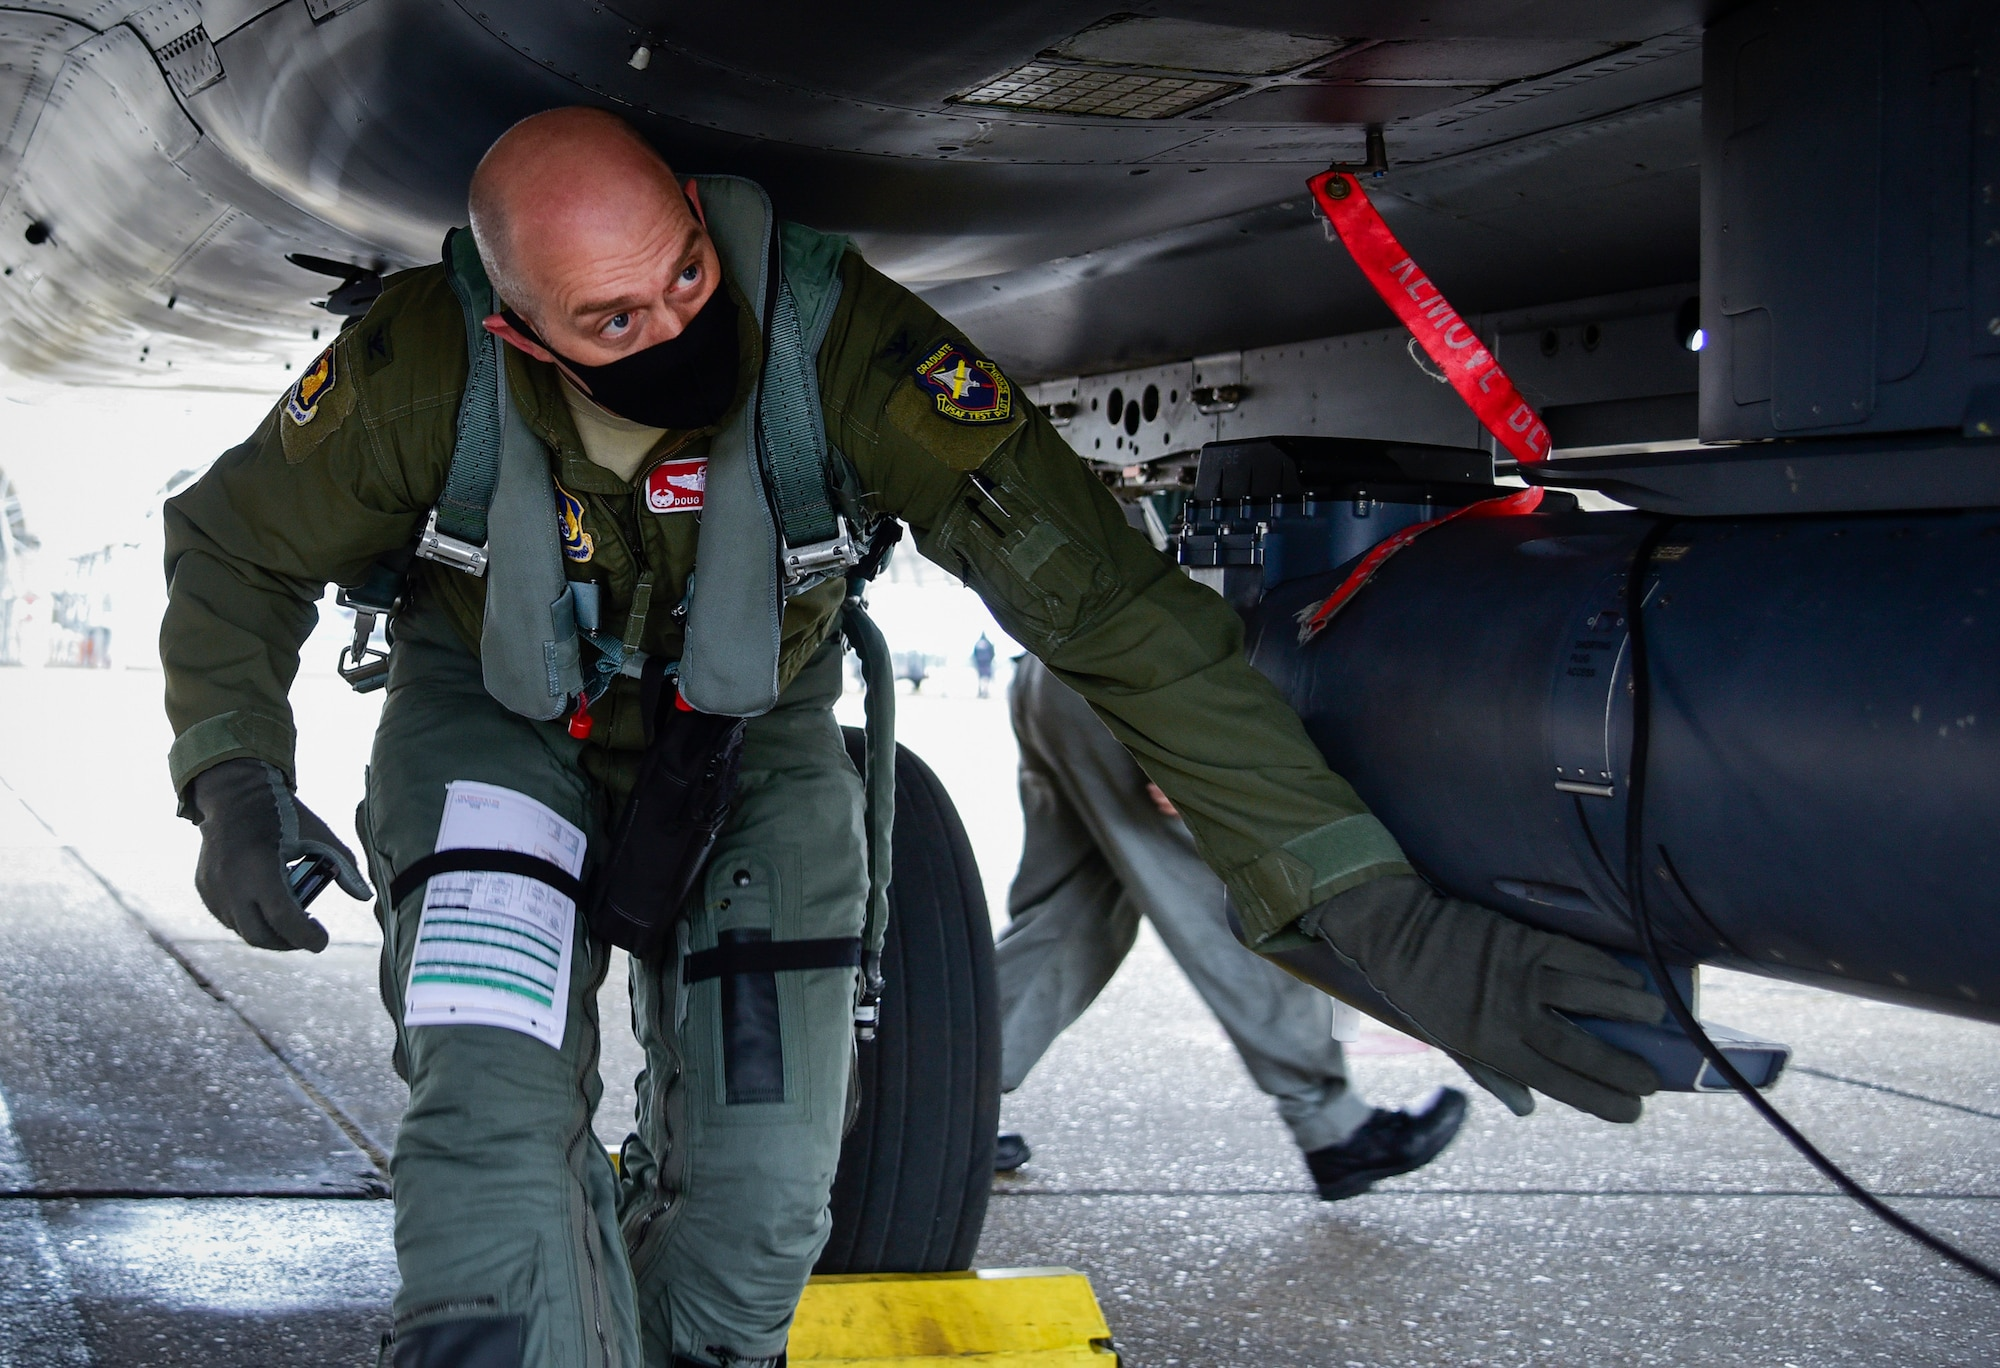 Col. Douglas Creviston, 96th Operations Group commander, performs preflight checks prior to an Emerald Flag mission at Eglin Air Force Base, Fla., Dec. 3, 2020. Emerald Flag was a collaborative multi-service effort focused on increasing the effectiveness of the joint domain warfighter. (U.S. Air Force photo by 1st Lt. Karissa Rodriguez)